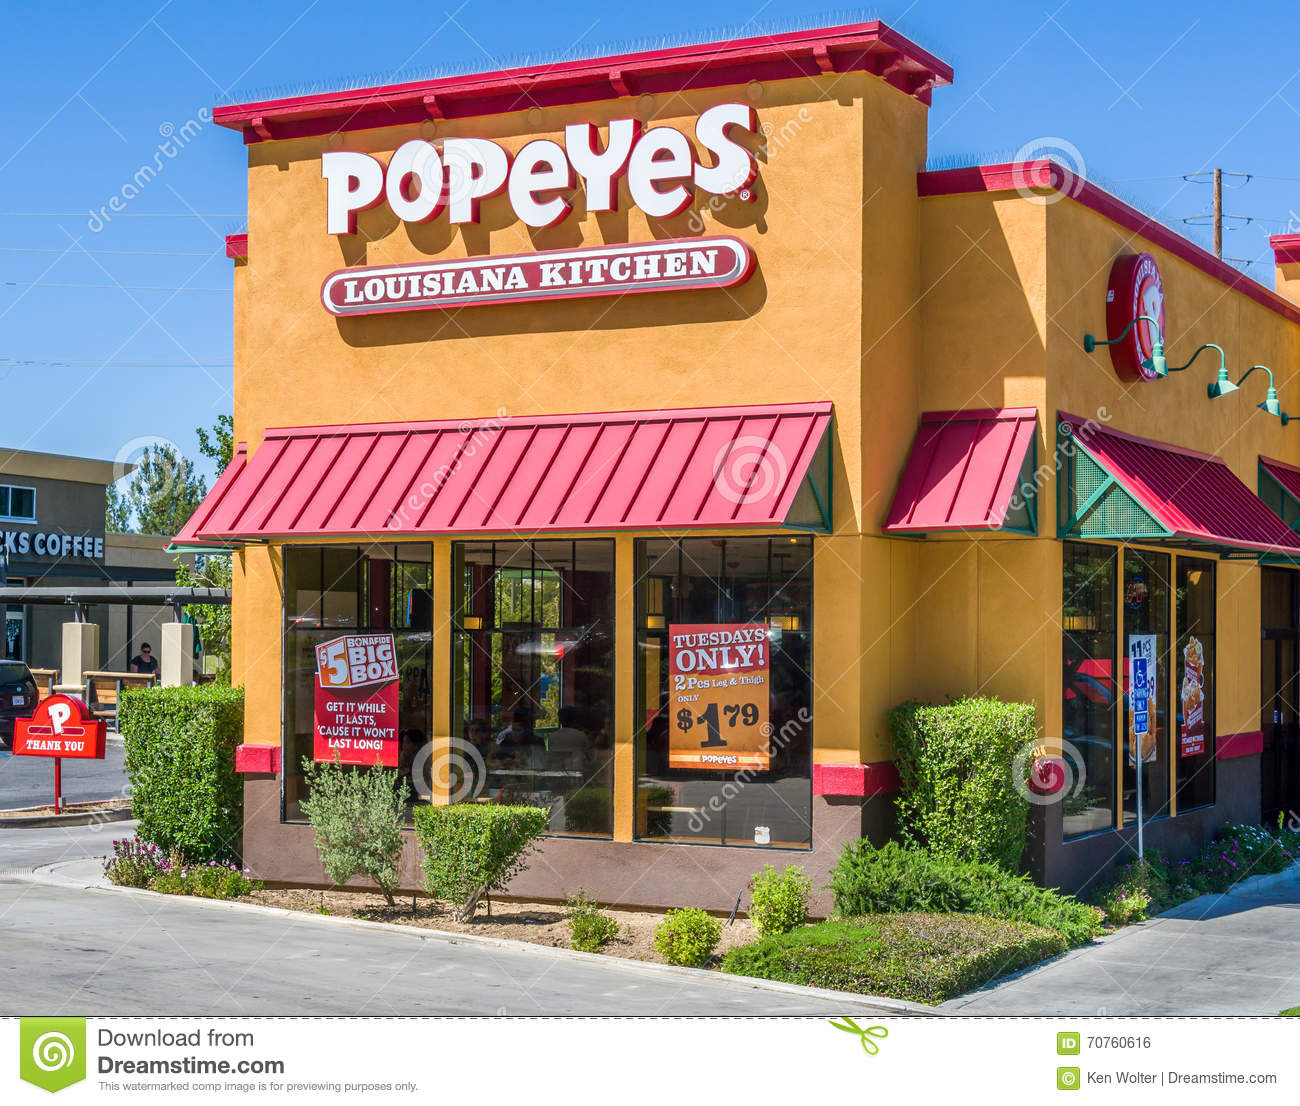 Popeyes Louisiana Kitchen Food popeyes louisiana kitchen exterior editorial photo - image: 70760616